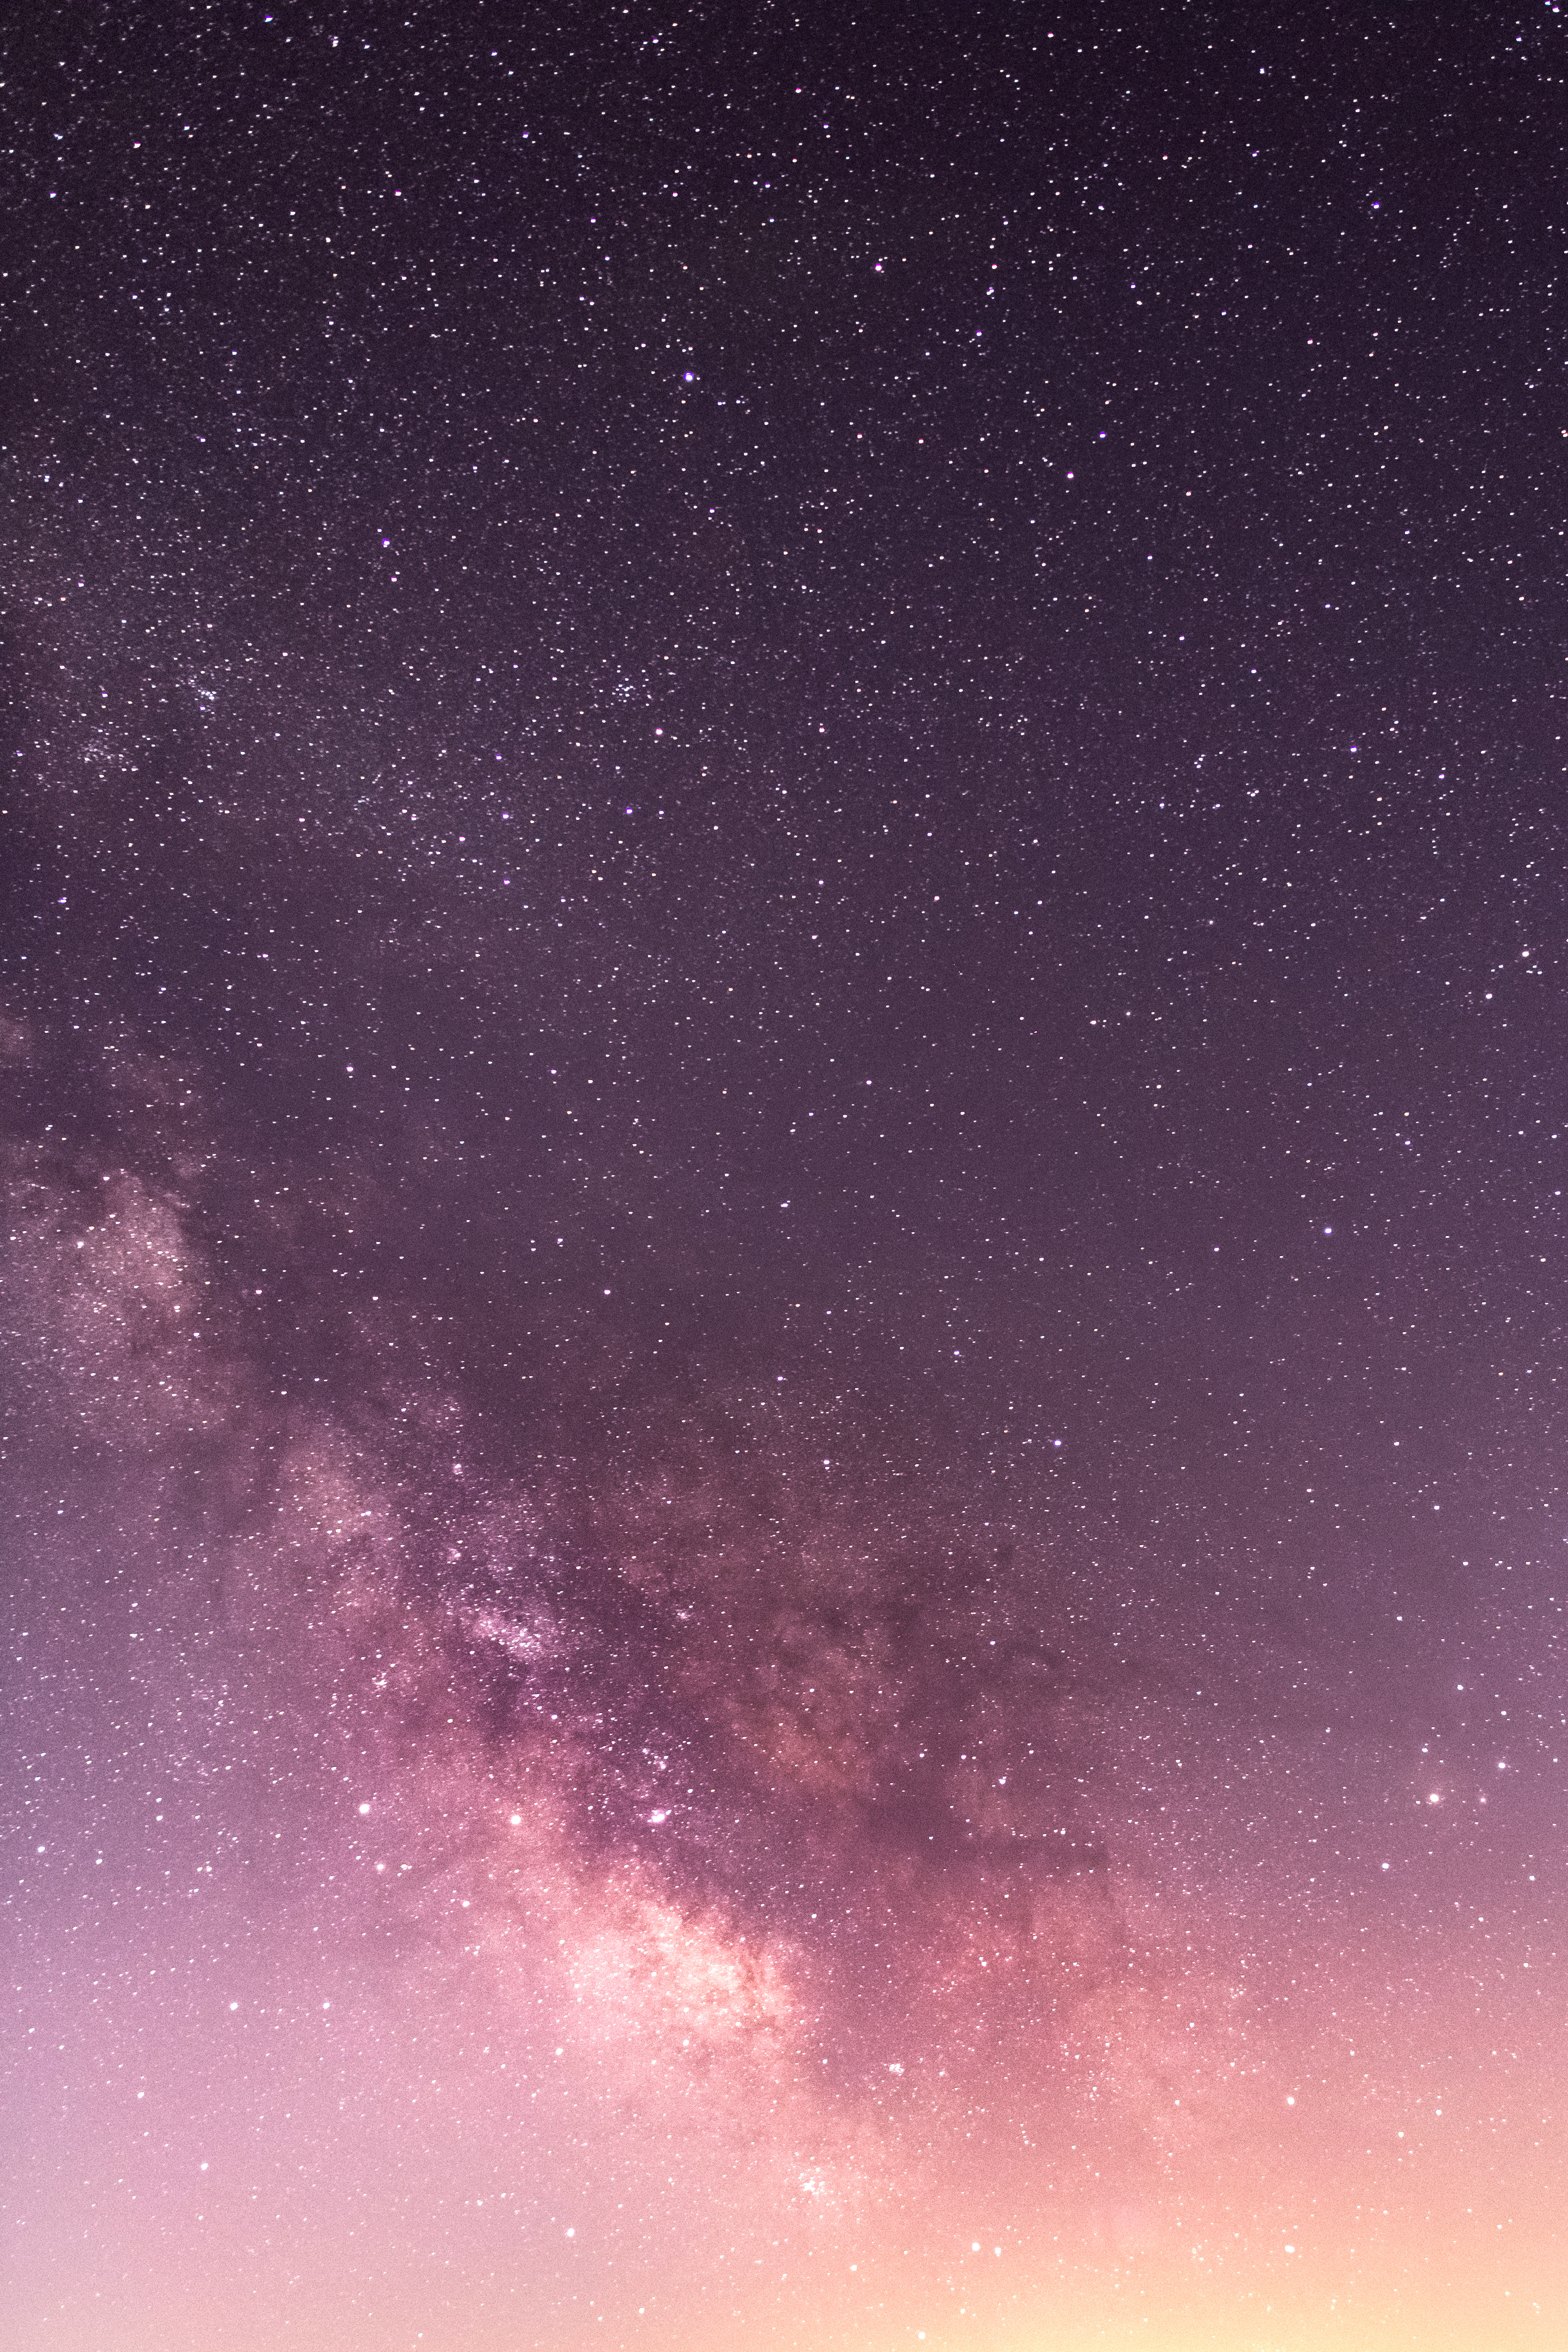 Dark Wallpapers Hd Photography Of Stars And Galaxy 183 Free Stock Photo